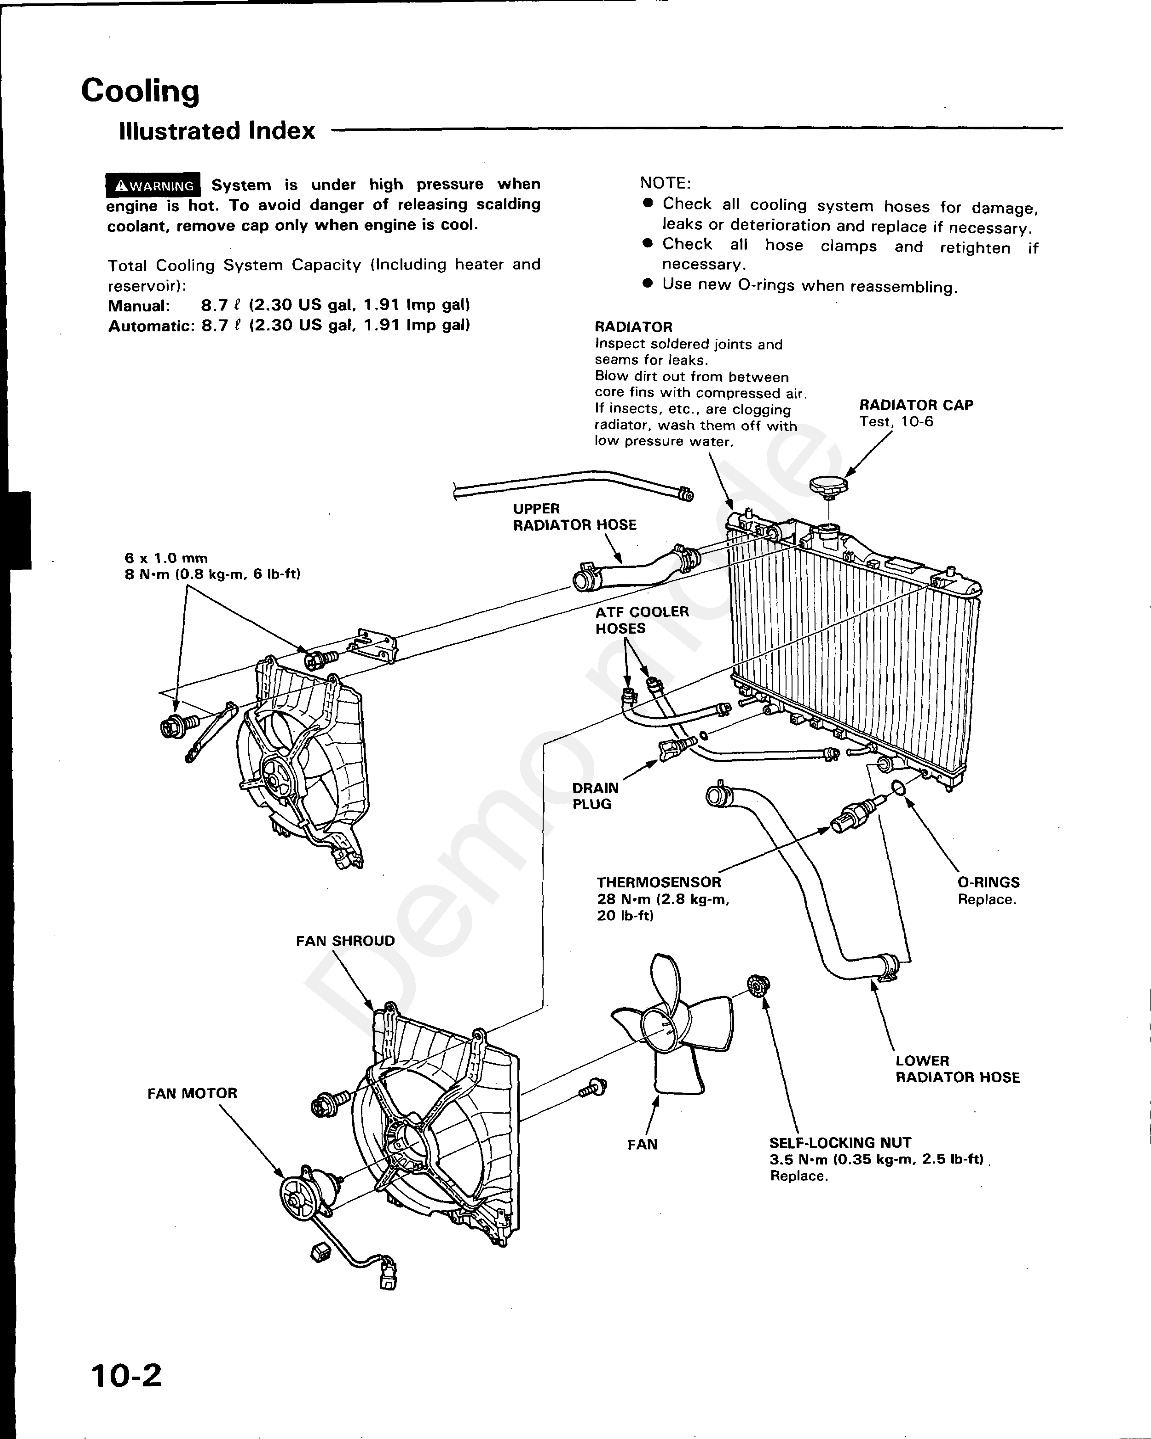 Acura Engine Cooling Diagram - Shelby Fan Wiring Diagram -  ad6e6.sehidup.jeanjaures37.fr | Acura Legend Ka7 Engine Diagram |  | Wiring Diagram Resource